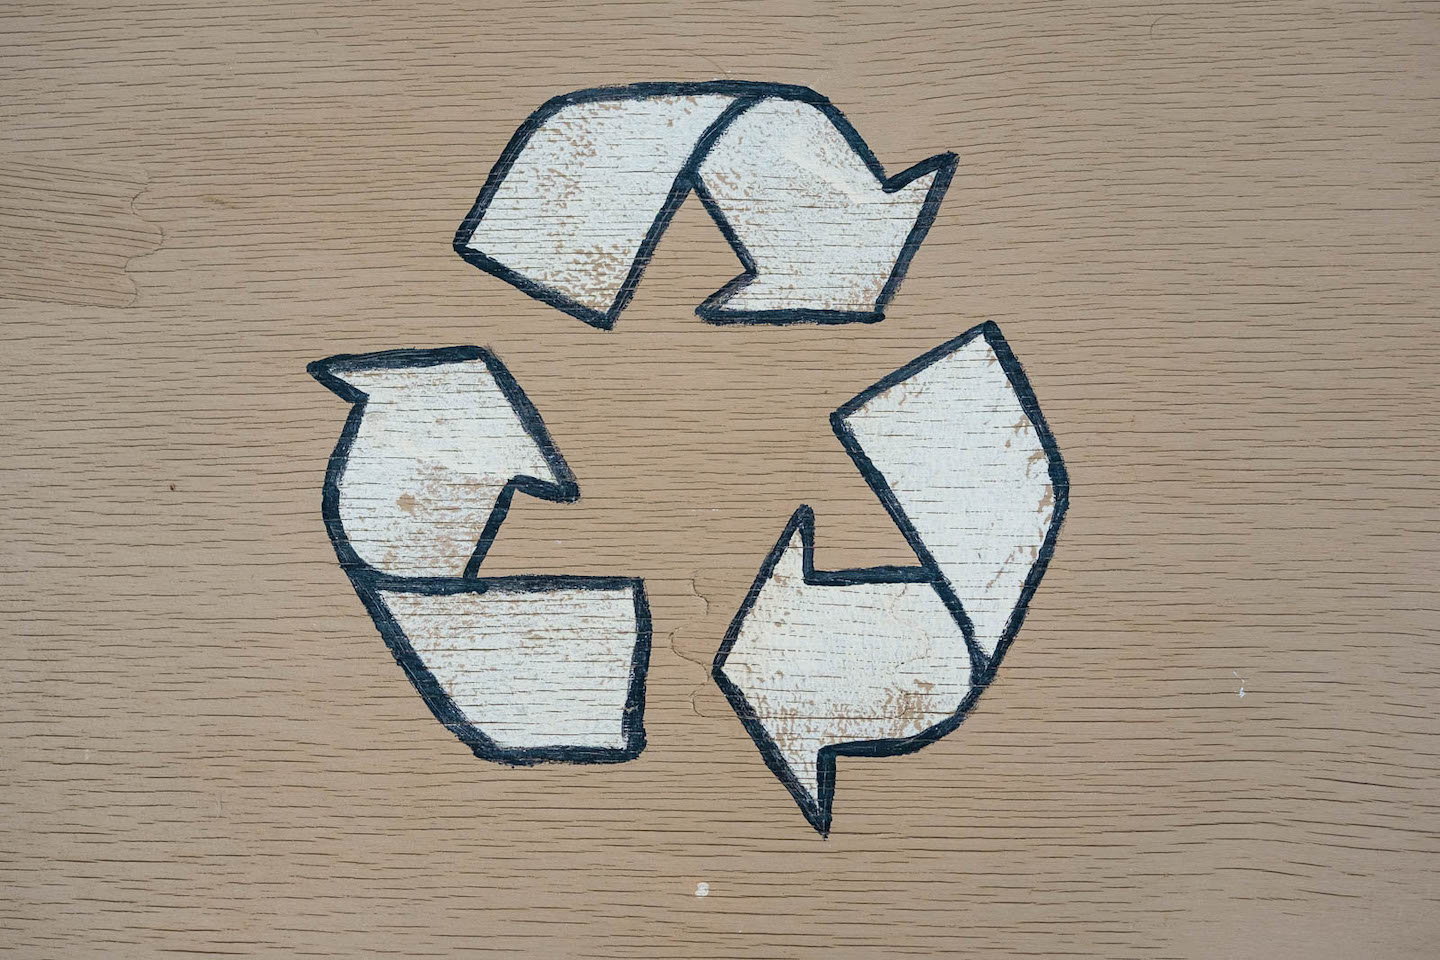 Recycling symbol in Oscar Suites & Village, an eco friendly hotel in Platanias, Crete.